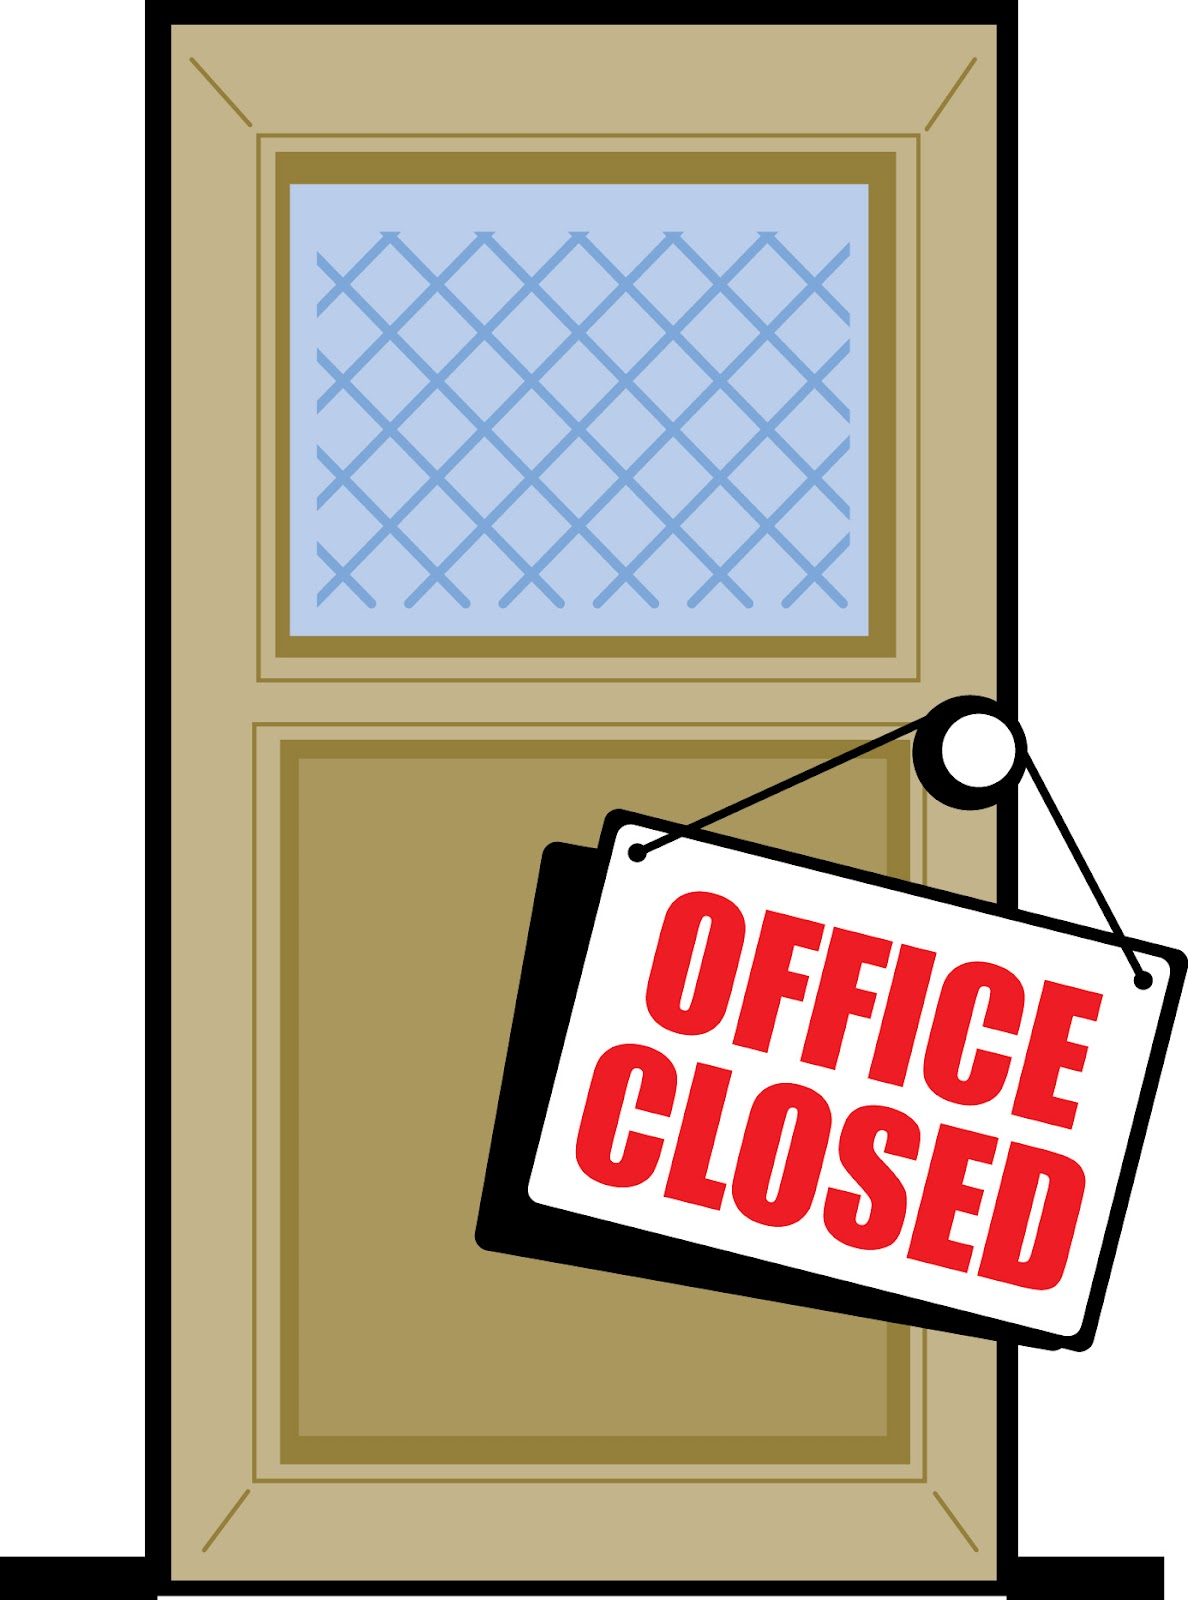 St Alban's Episcopal Church Office Closed On The 4th Of July